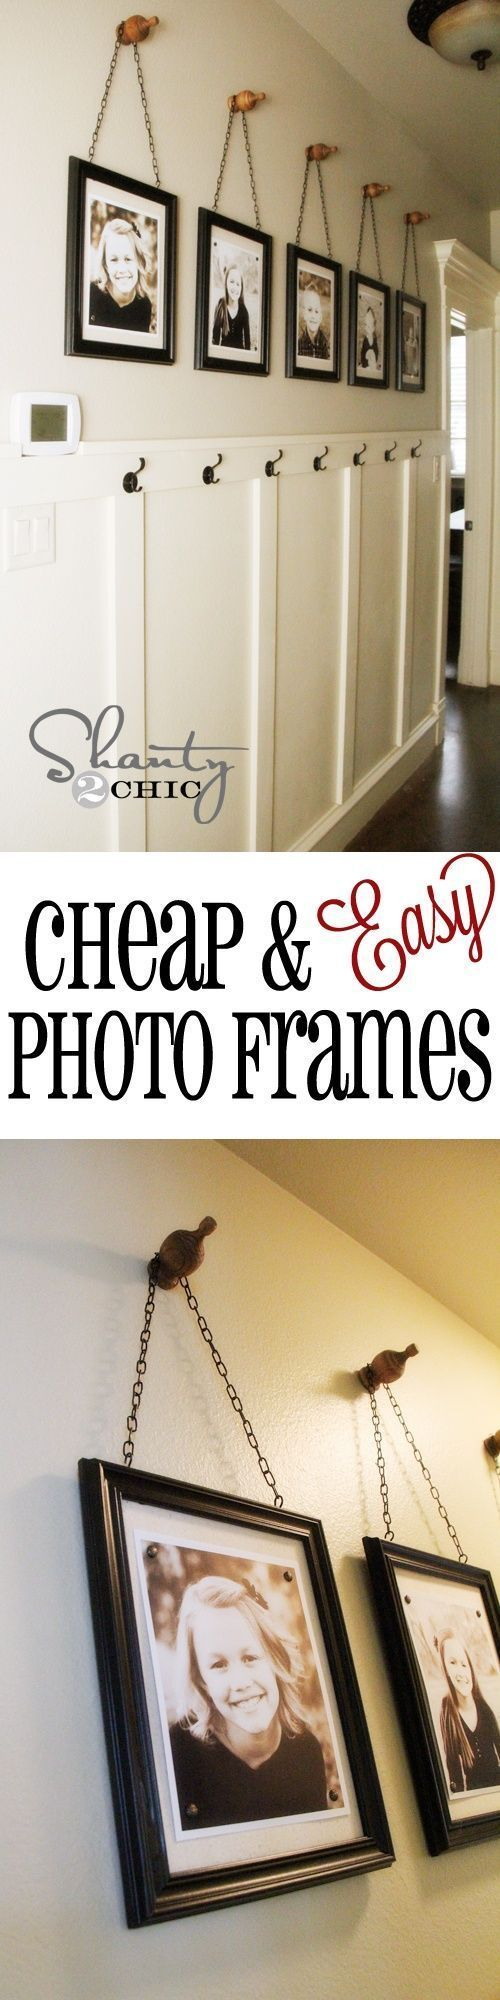 Cheap & Easy Picture Frames! @ Home DIY Remodeling | Remodeling on a ...